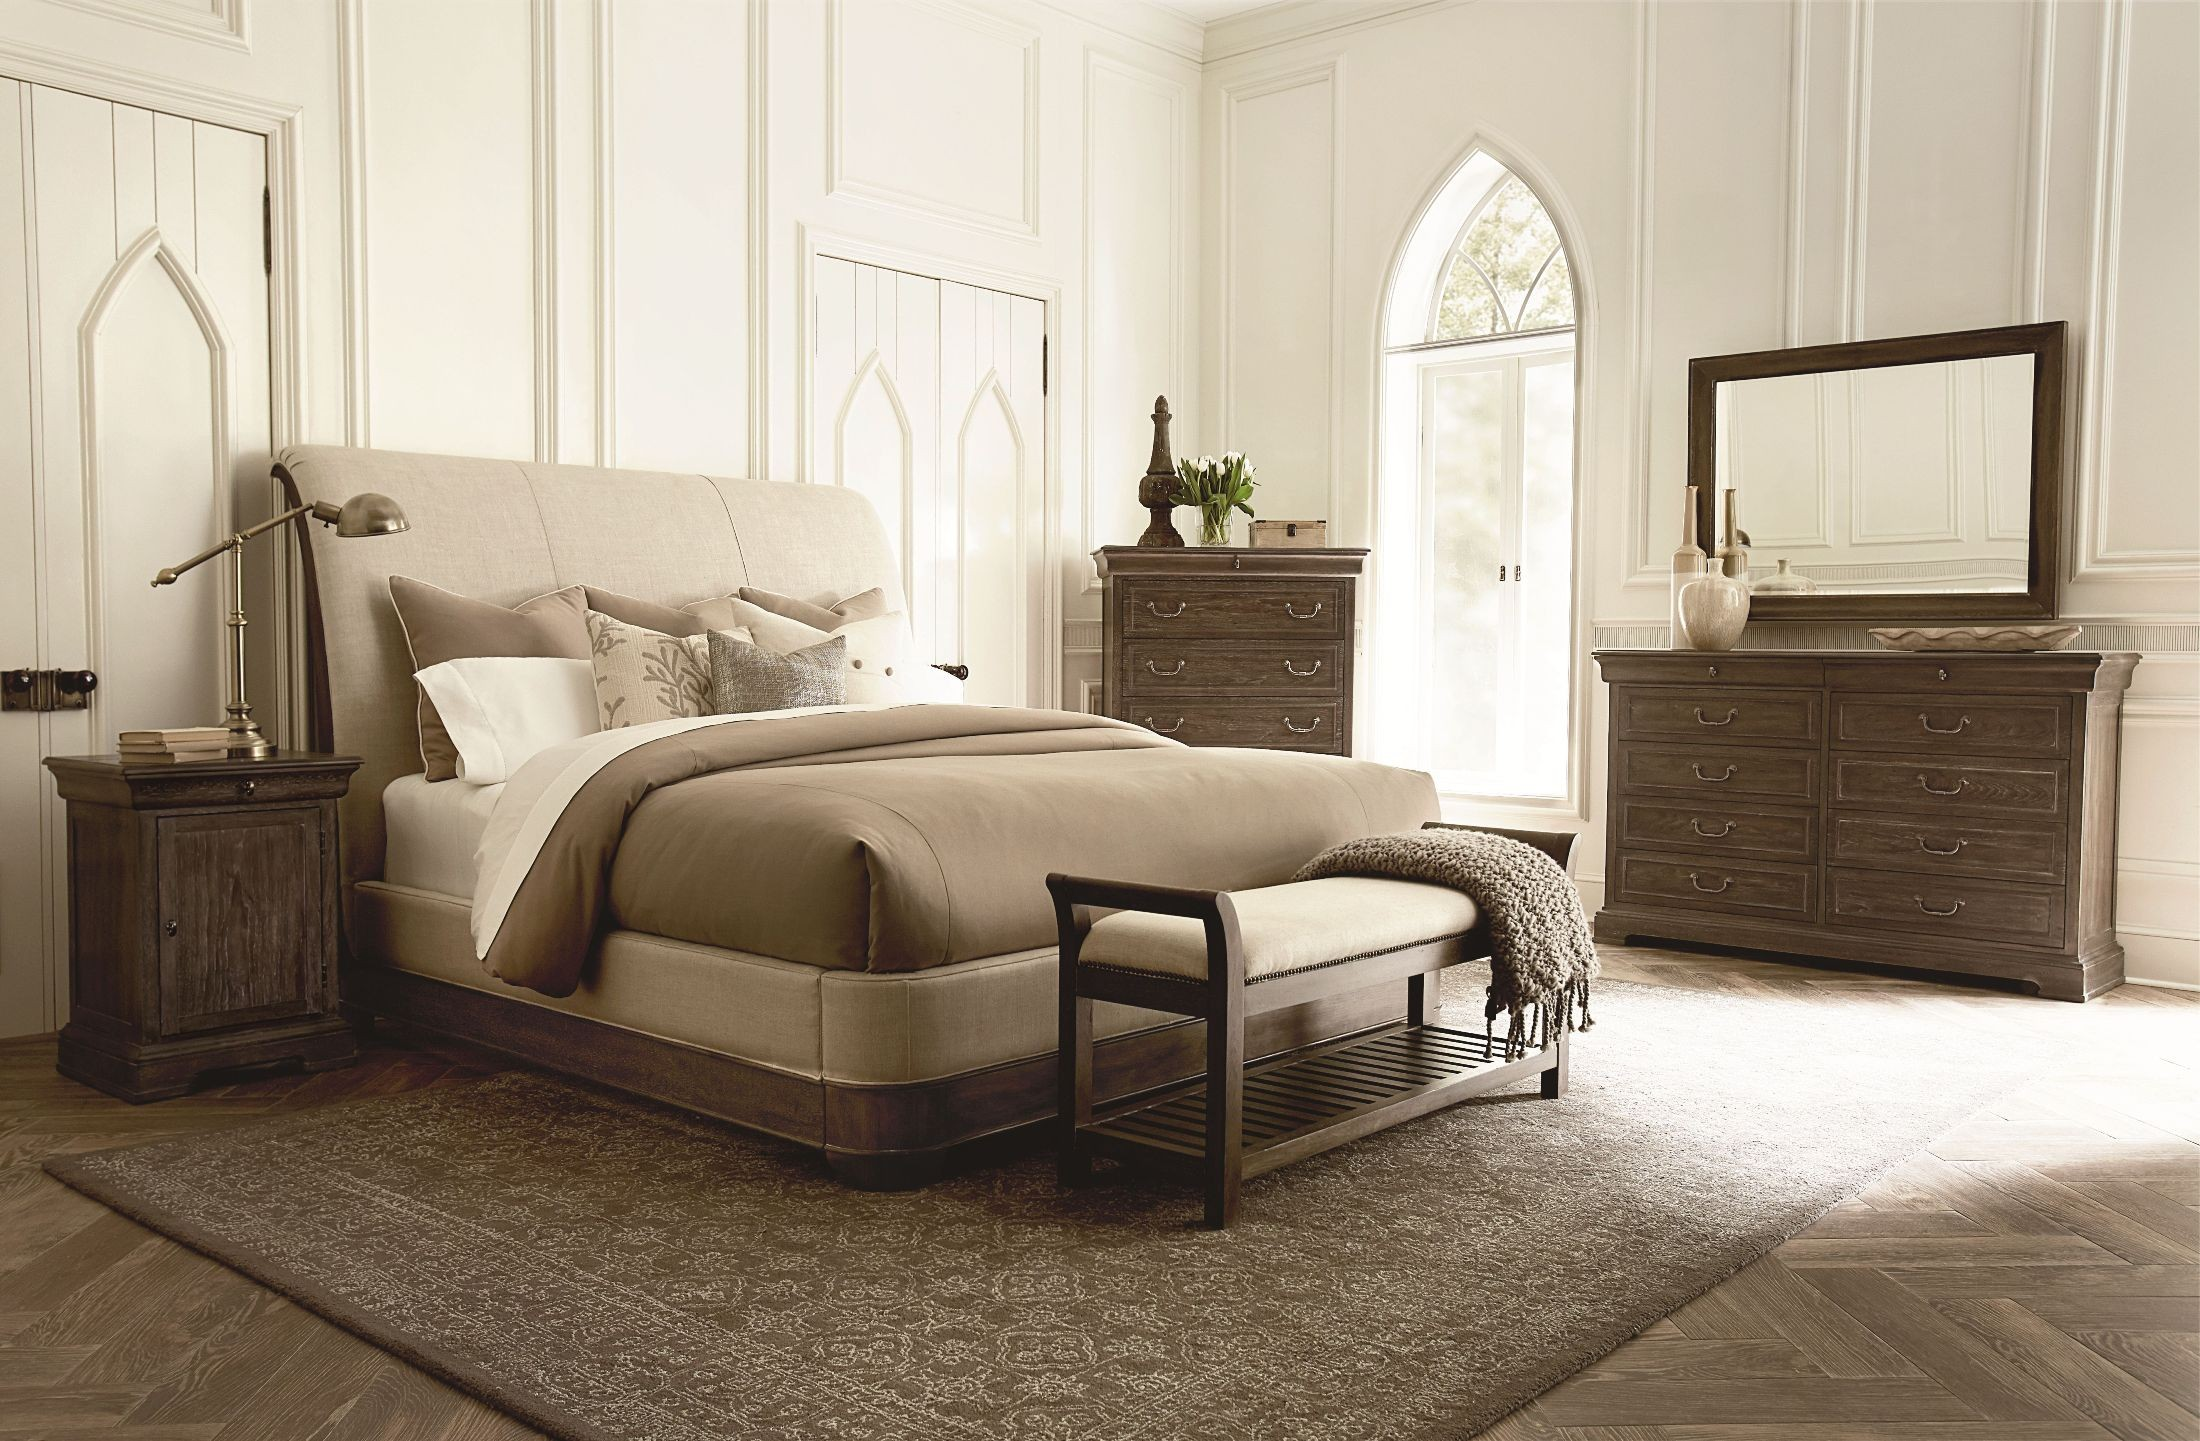 upholstered bedroom sets st germain upholstered sleigh bedroom set from 13698